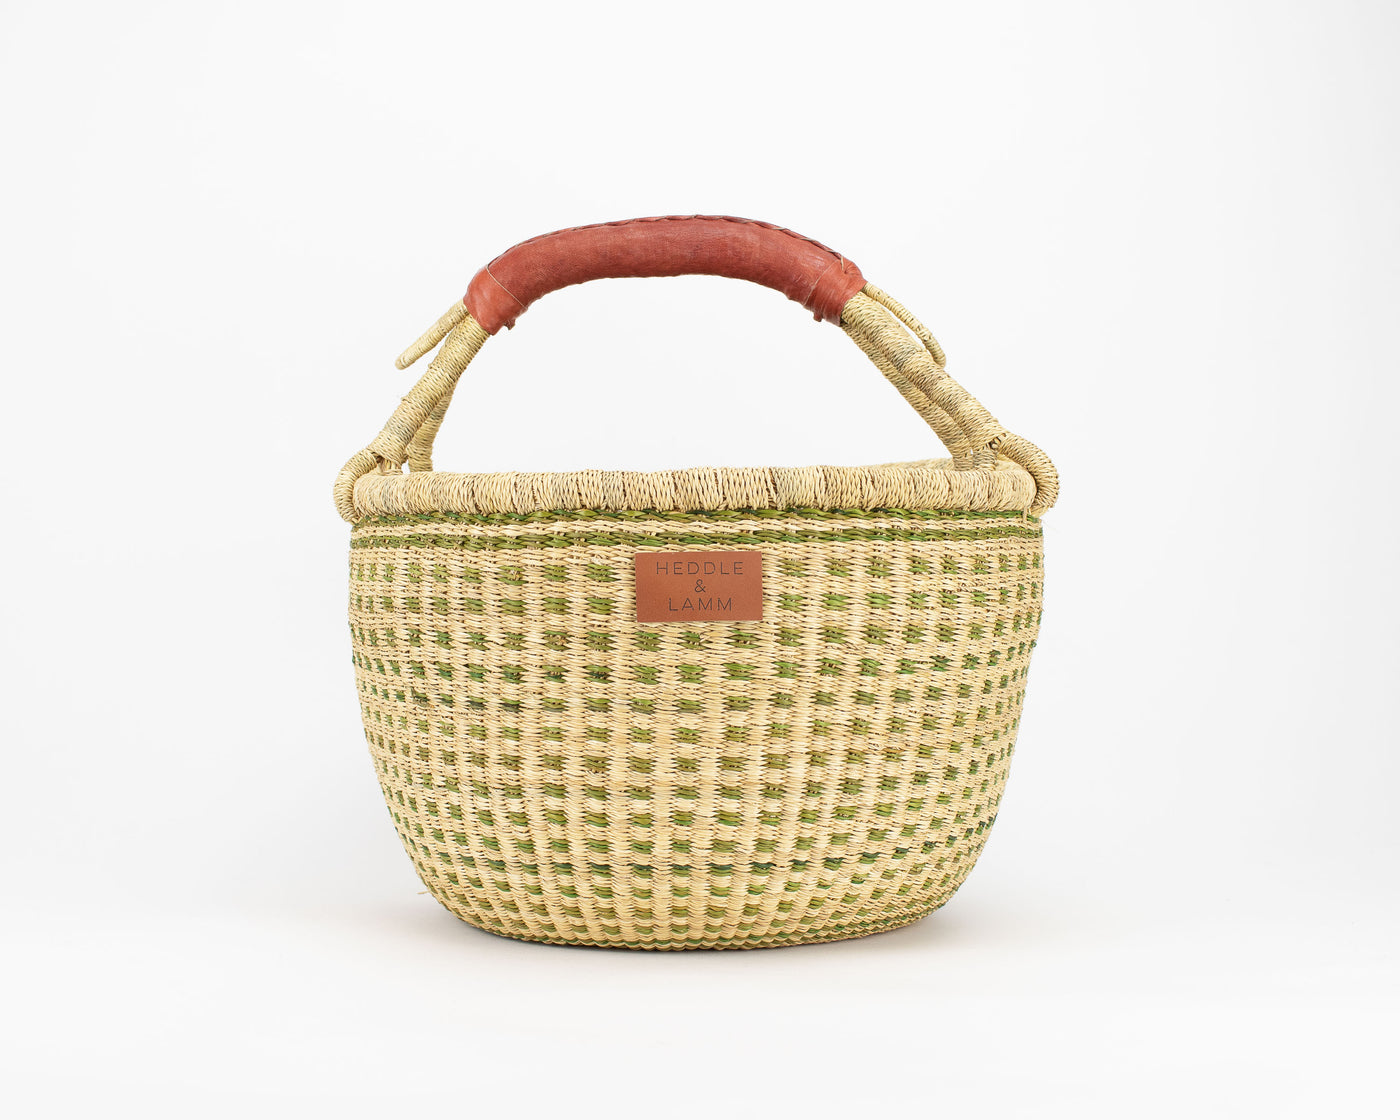 Jaha Bolga Basket - Brown Handle